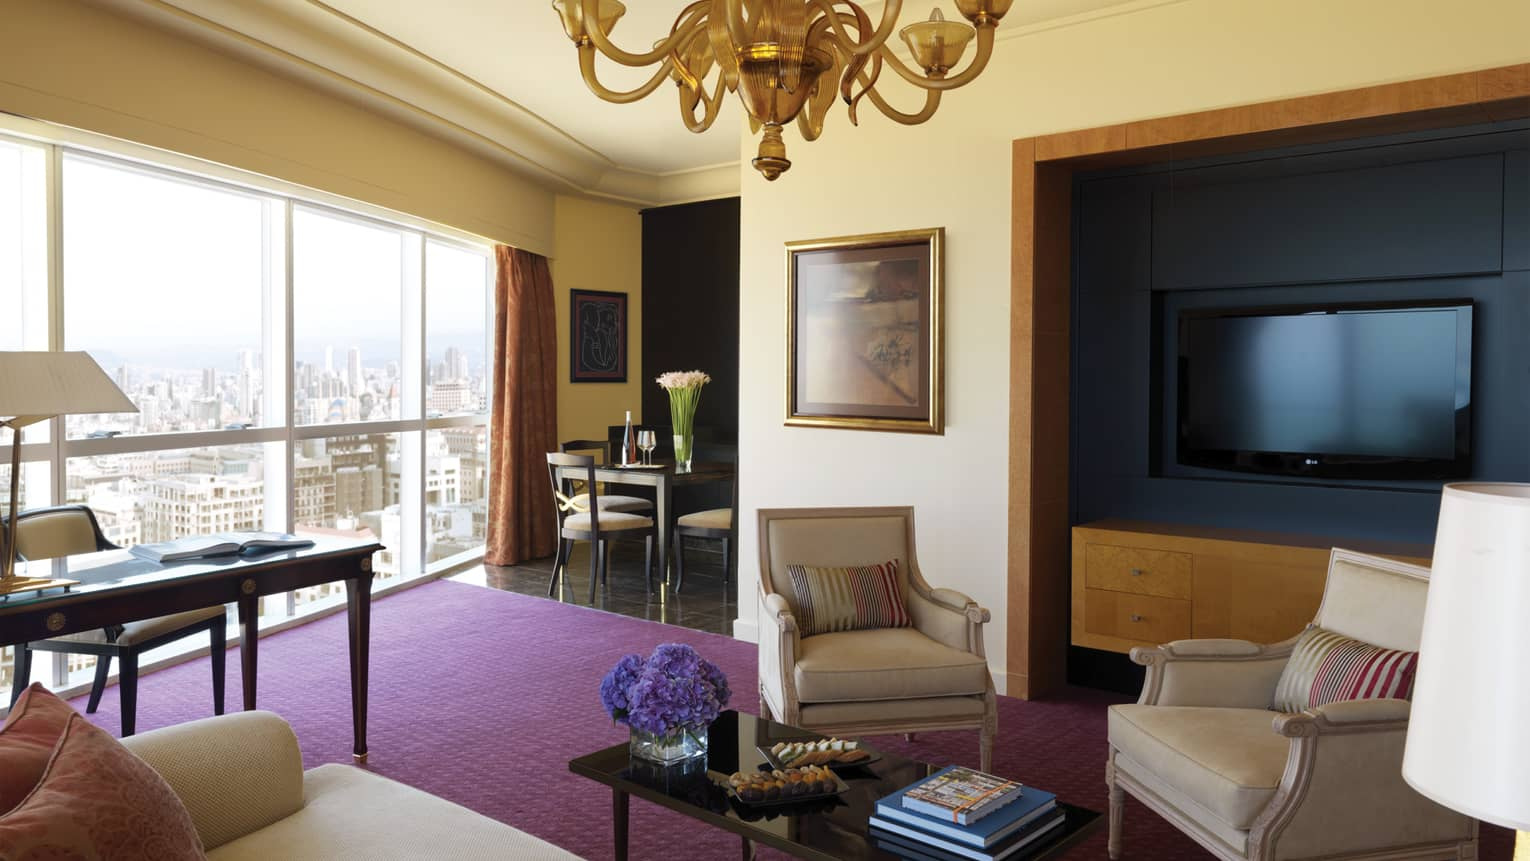 Residential Suite living room with sofa and two chairs, coffee table, purple carpet, large TV, dining table in view